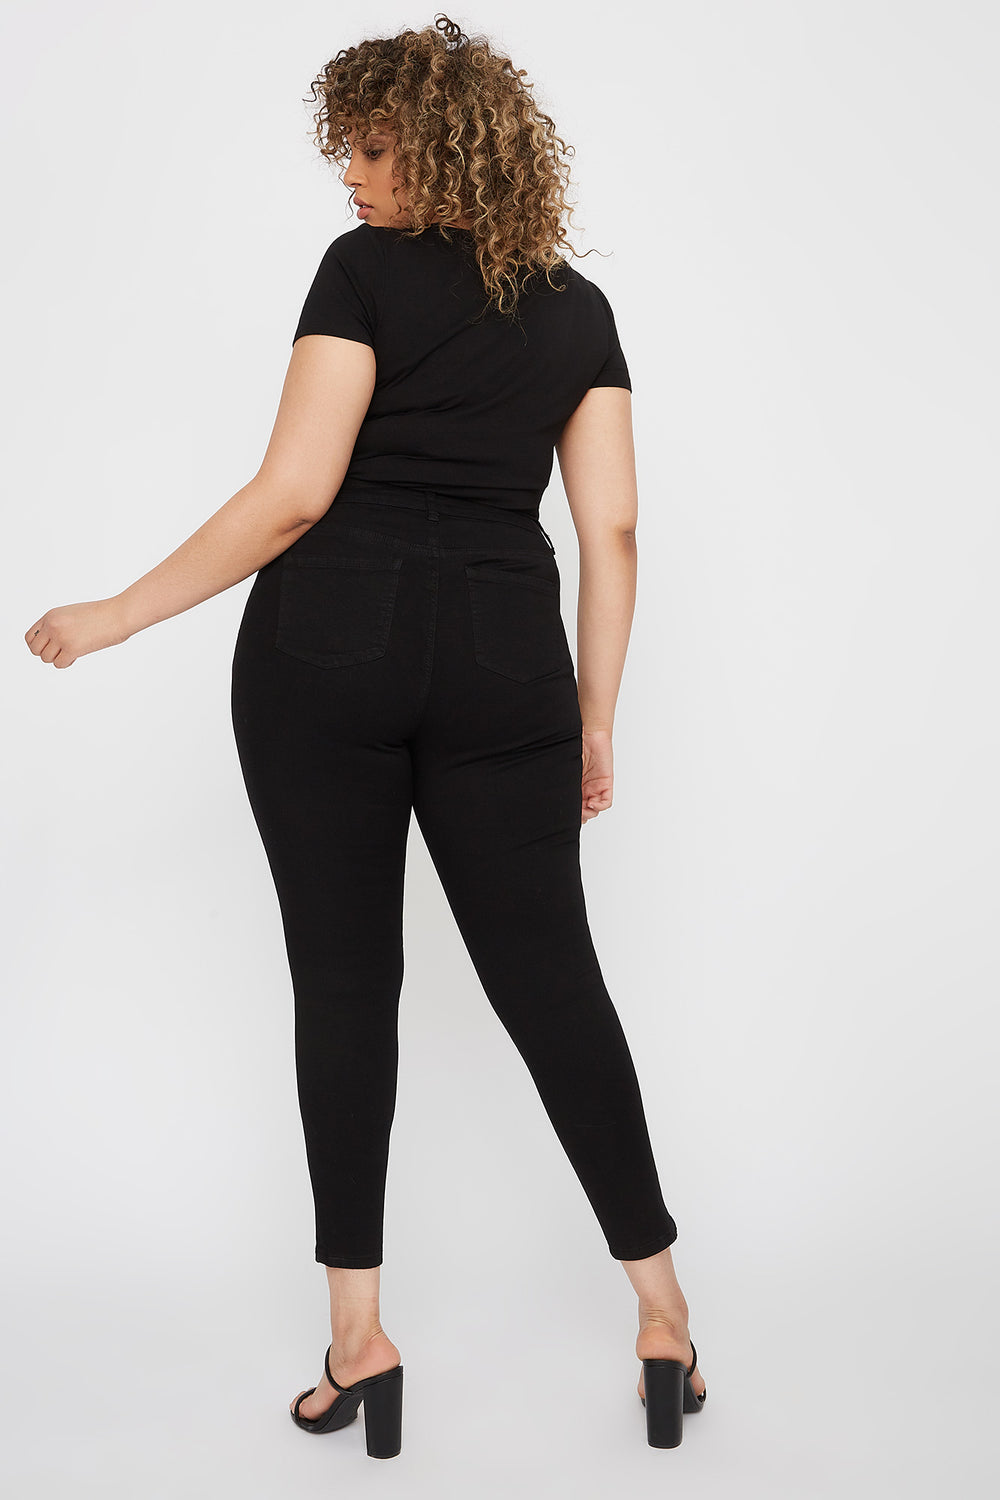 Plus Size High-Rise Distressed Skinny Jean Black